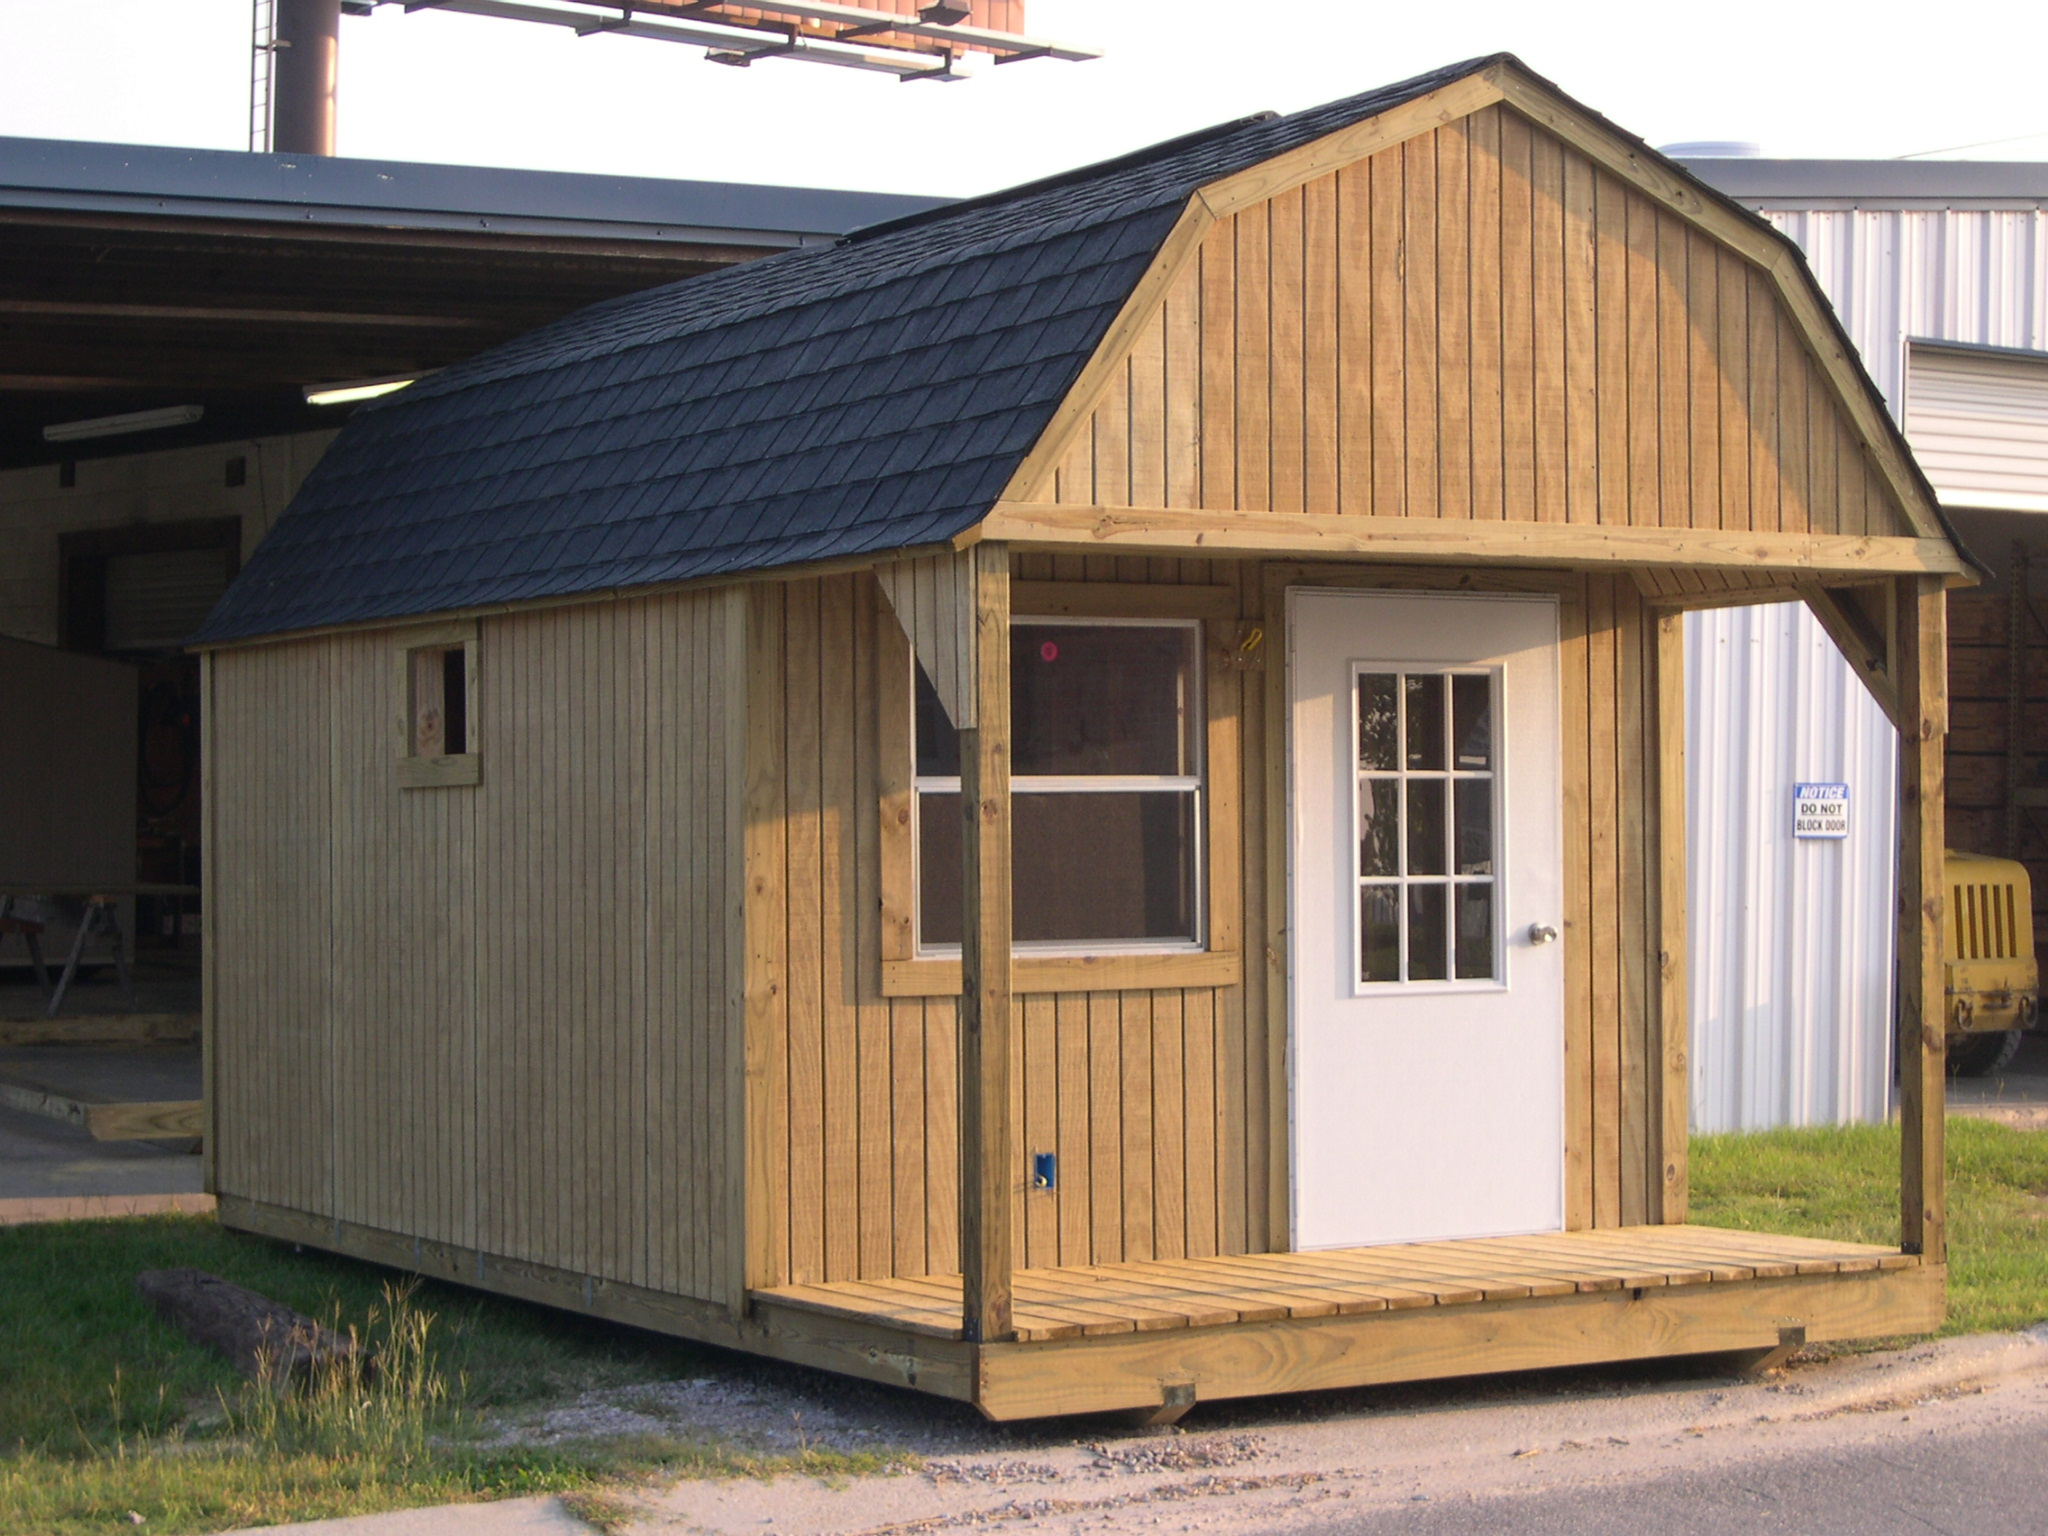 Woodwork building plans wood storage sheds pdf plans for Building a storage shed